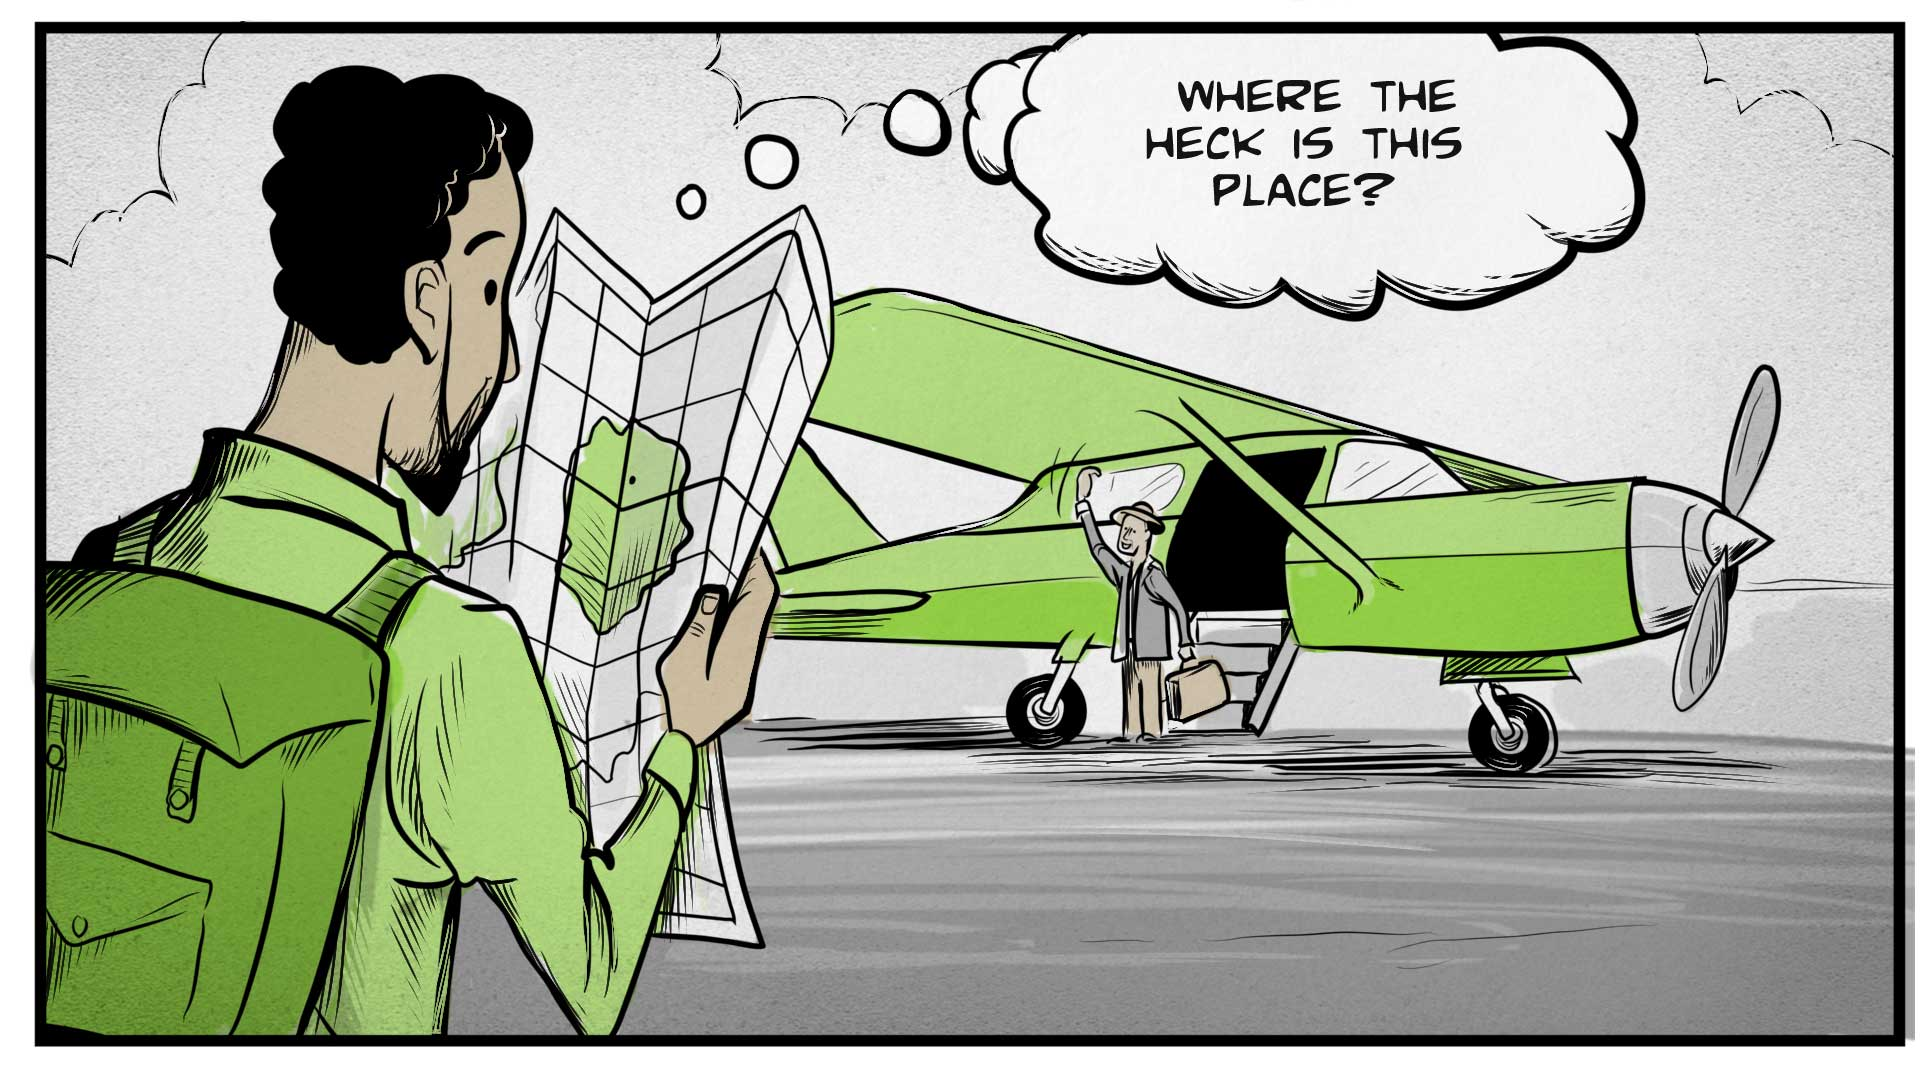 """A man wearing a backpack consults a map. He thinks to himself, """"Where the heck is this place?"""" In front of him is a small, single-engine airplane. A man waves to him from the steps of the plane."""